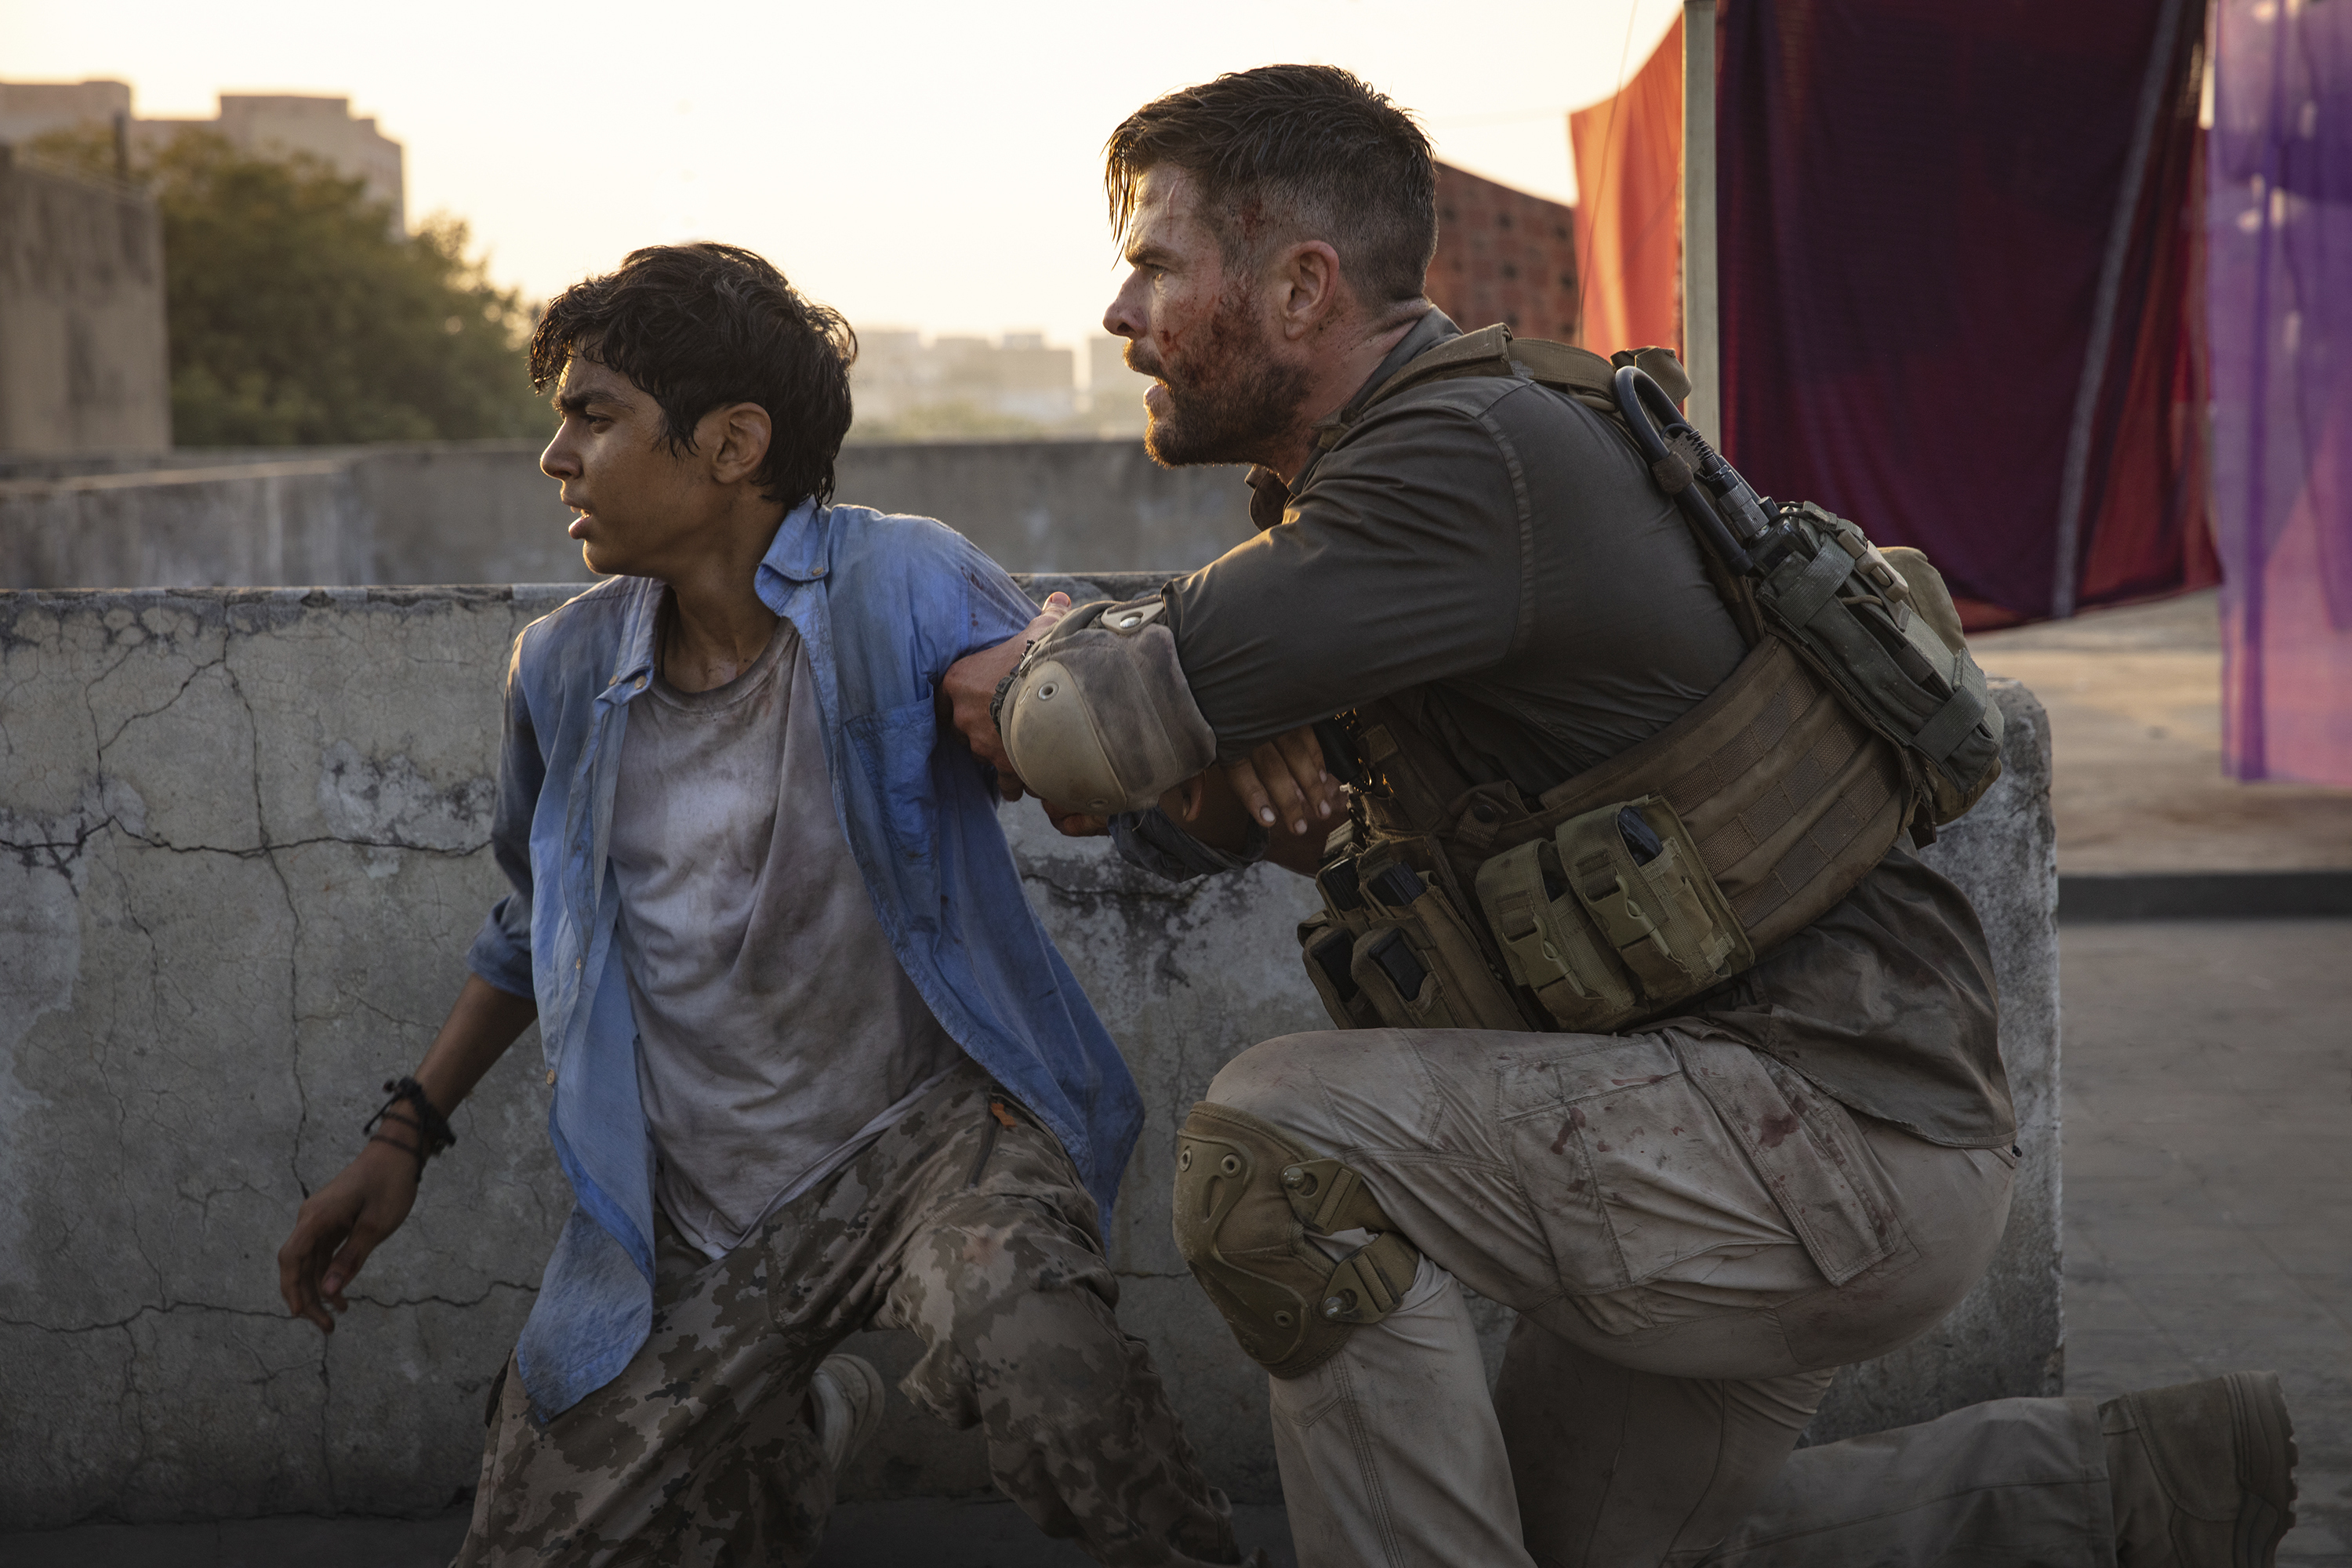 Dynamic Thriller Chris Hemsworth Propels Bourne Like Crowd Pleaser Extraction Albuquerque Journal